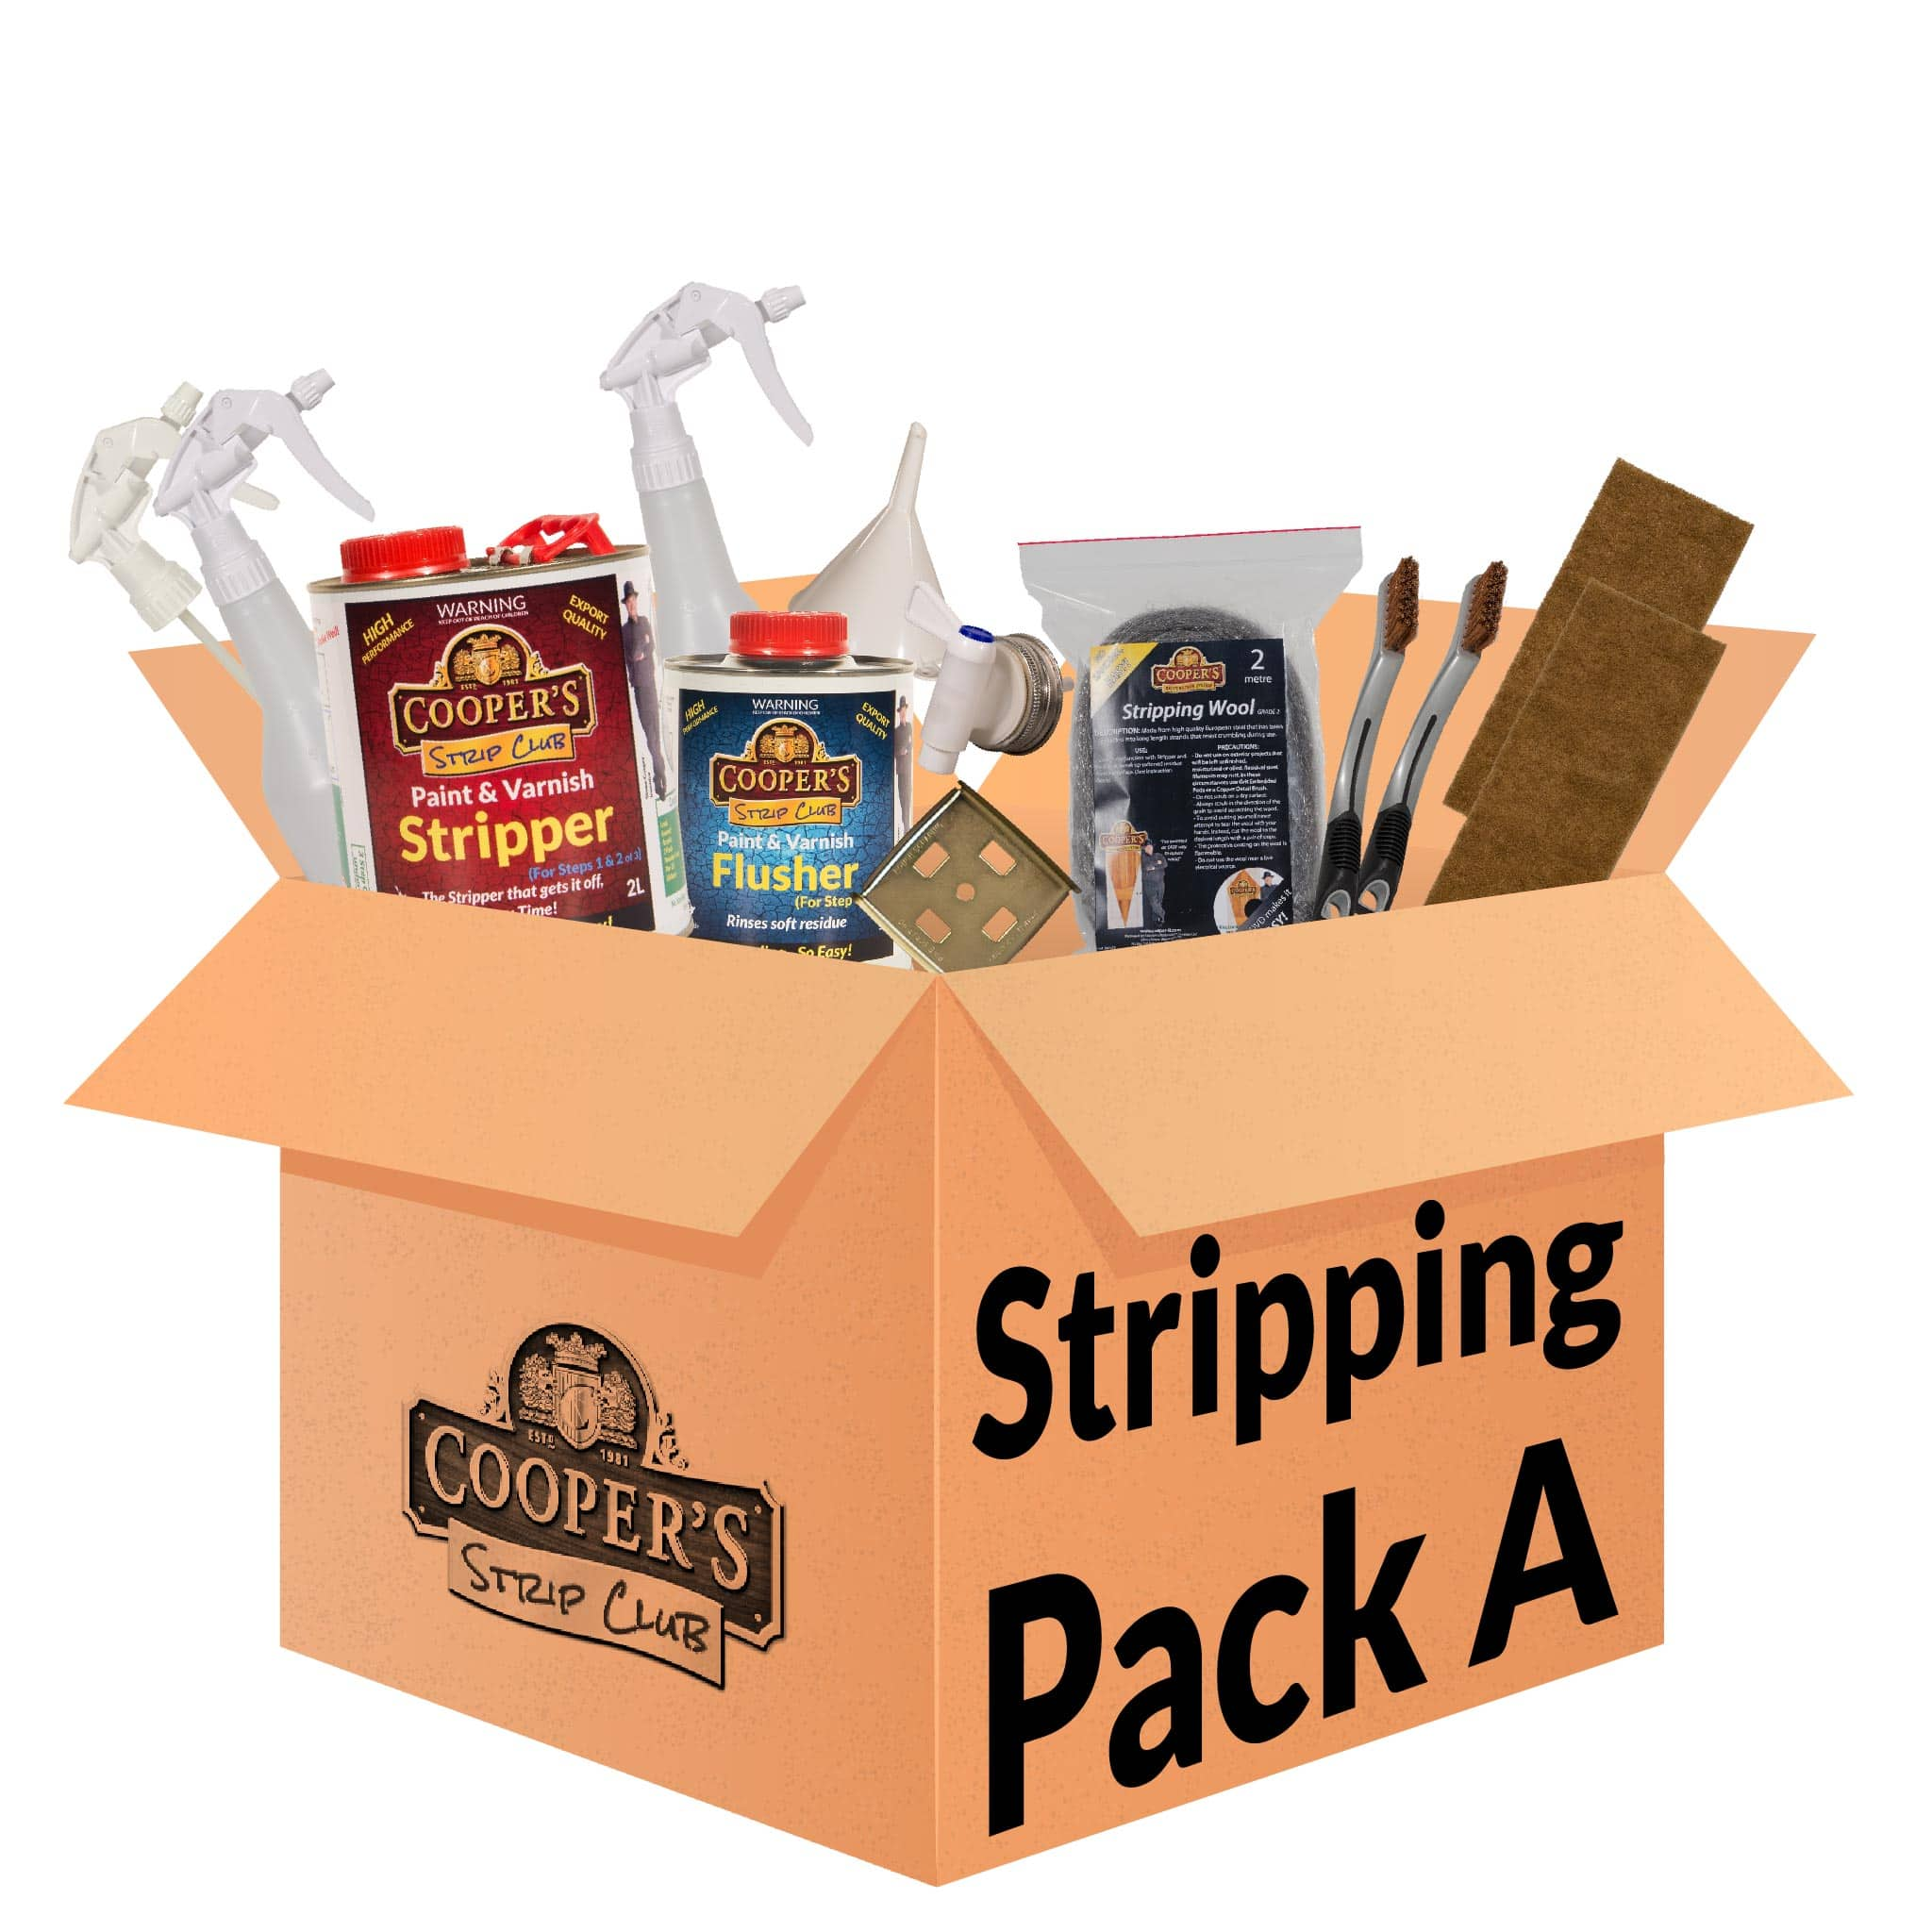 Cooper's Stripping Pack A